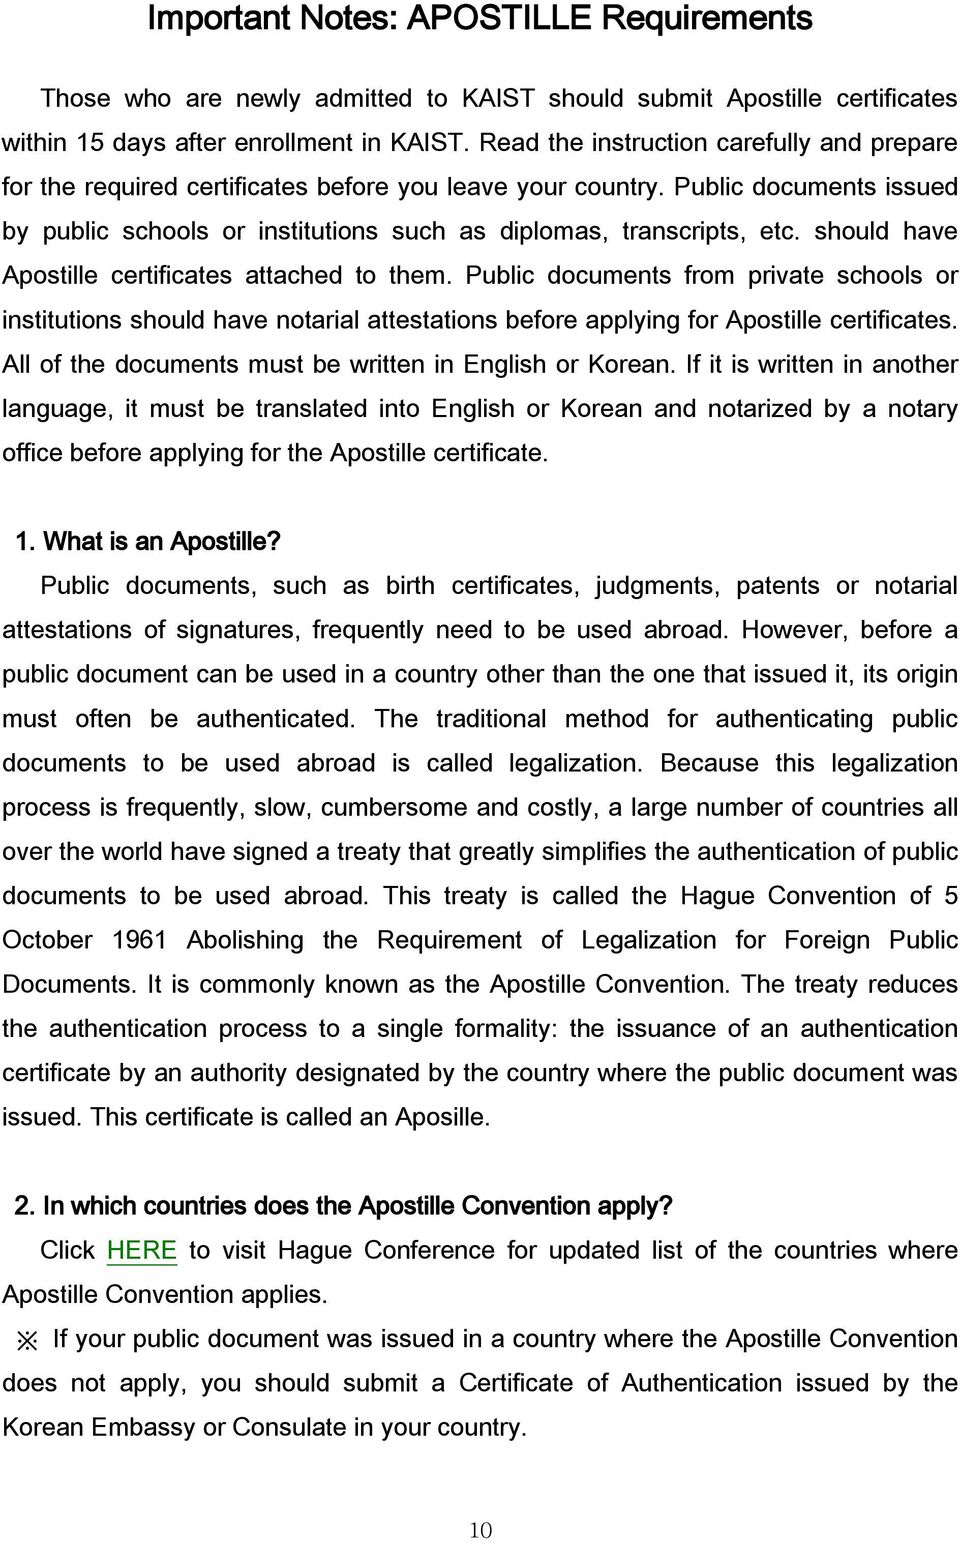 should have Apostille certificates attached to them. Public documents from private schools or institutions should have notarial attestations before applying for Apostille certificates.